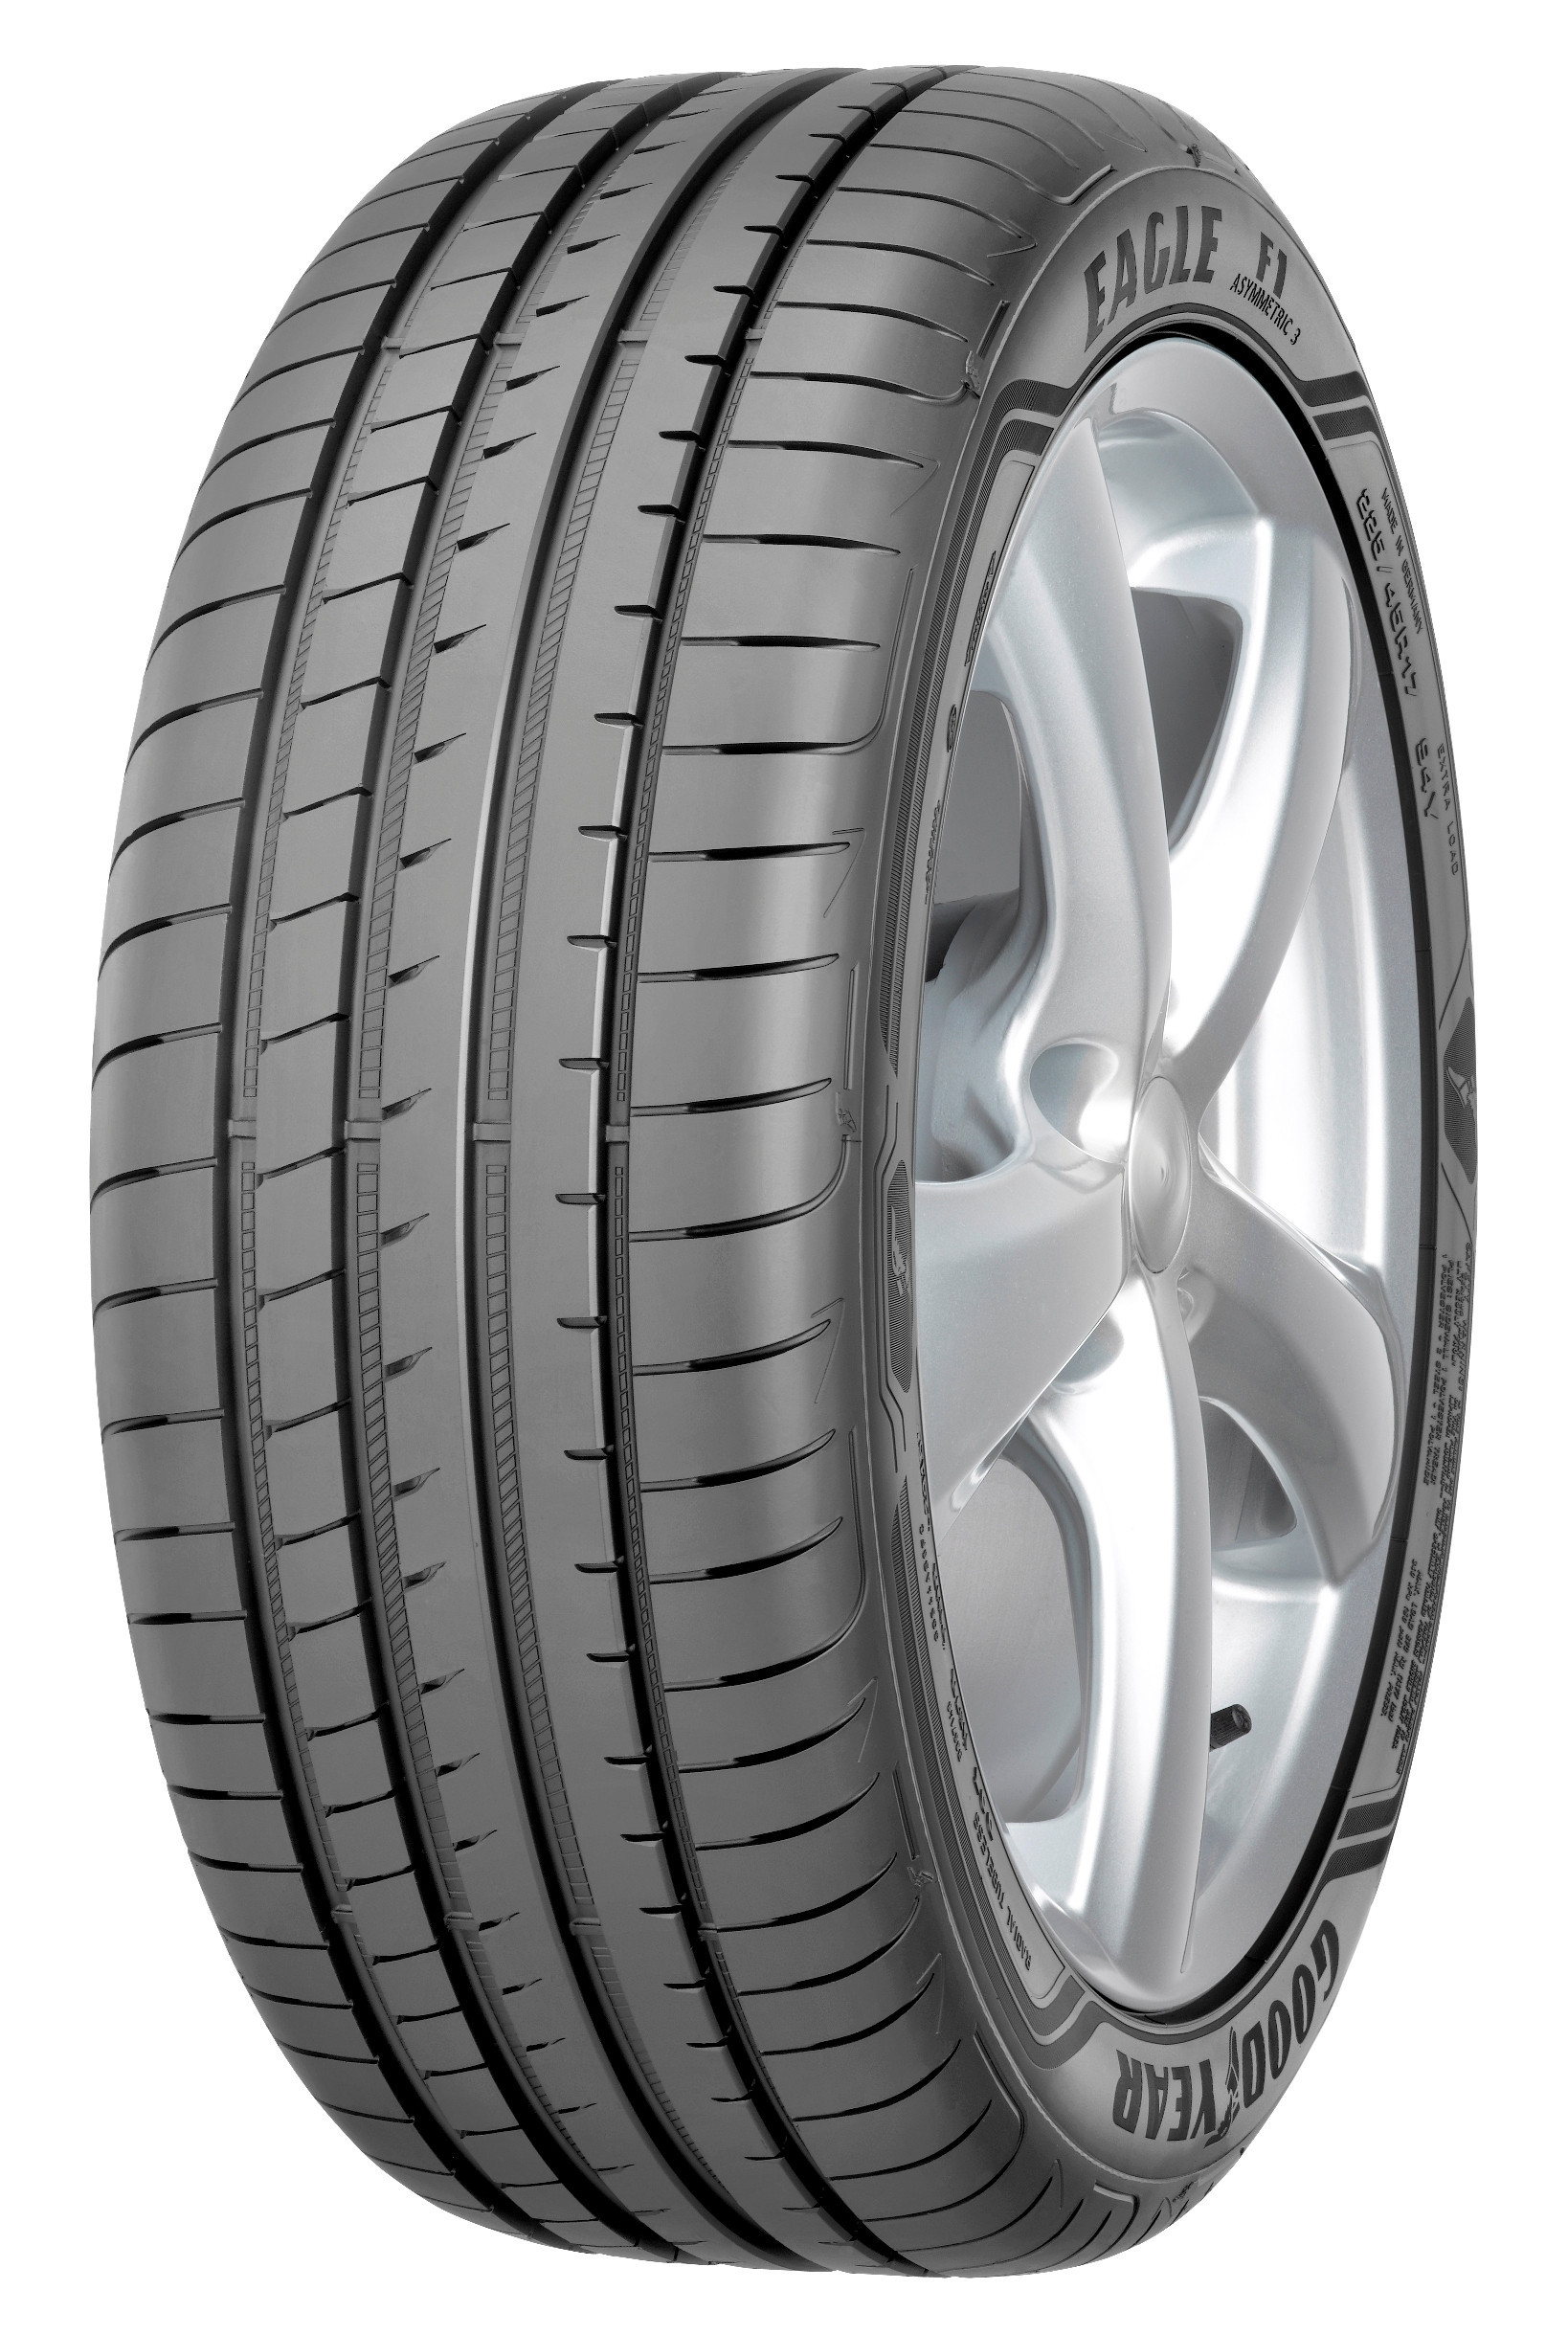 Anvelopa Vara 265/35R18 97Y Goodyear Eagle F1 Asymmetric 3